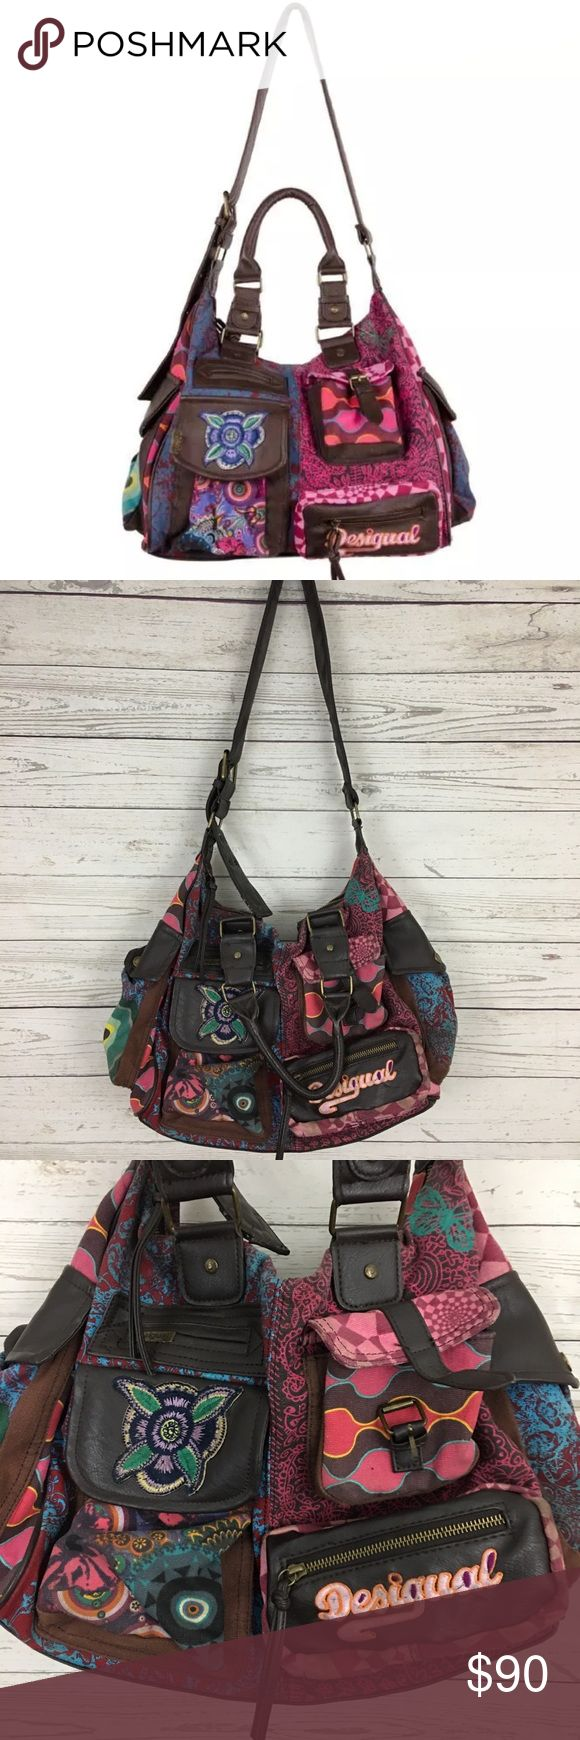 """Desigual rainbow crossbody satchel large purse Great condition. About 14"""" x 12"""" x 7"""".   Spacious colorful bag by Desigual. The large shoulder bag London Martina has two short handles and an adjustable shoulder strap. Ten extra pockets have been put on the outside in different shapes, sometimes with a zipper, sometimes with net or just with a button. Super practical for all your treasures in everyday life! Great gift idea! Desigual Bags"""